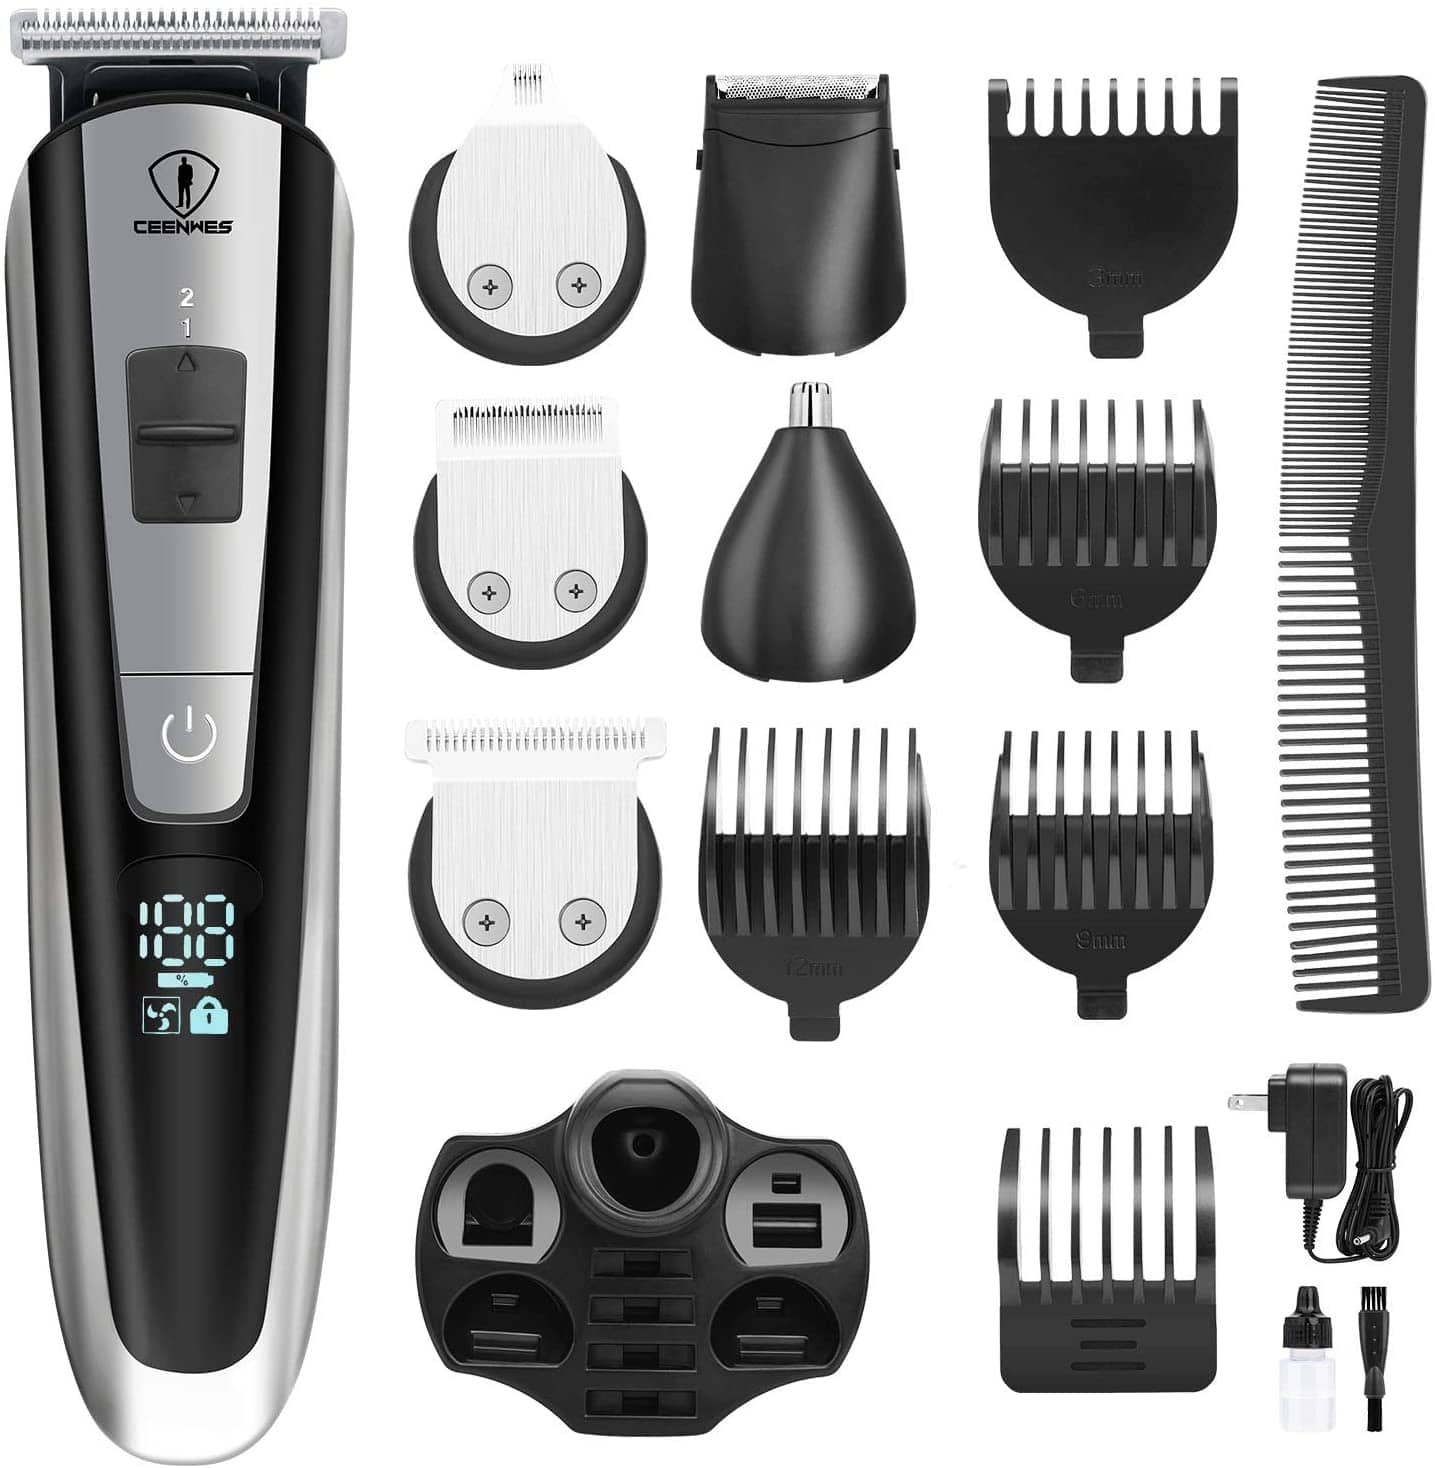 Ceenwes Men's Grooming Kit Professional Beard Trimmer Hair Clippers Hair Trimmer Hair Design Trimmer Mustache Trimmer Body Groomer/Nose Ear Trimmer for Facial Body Hairs $11.98 FS